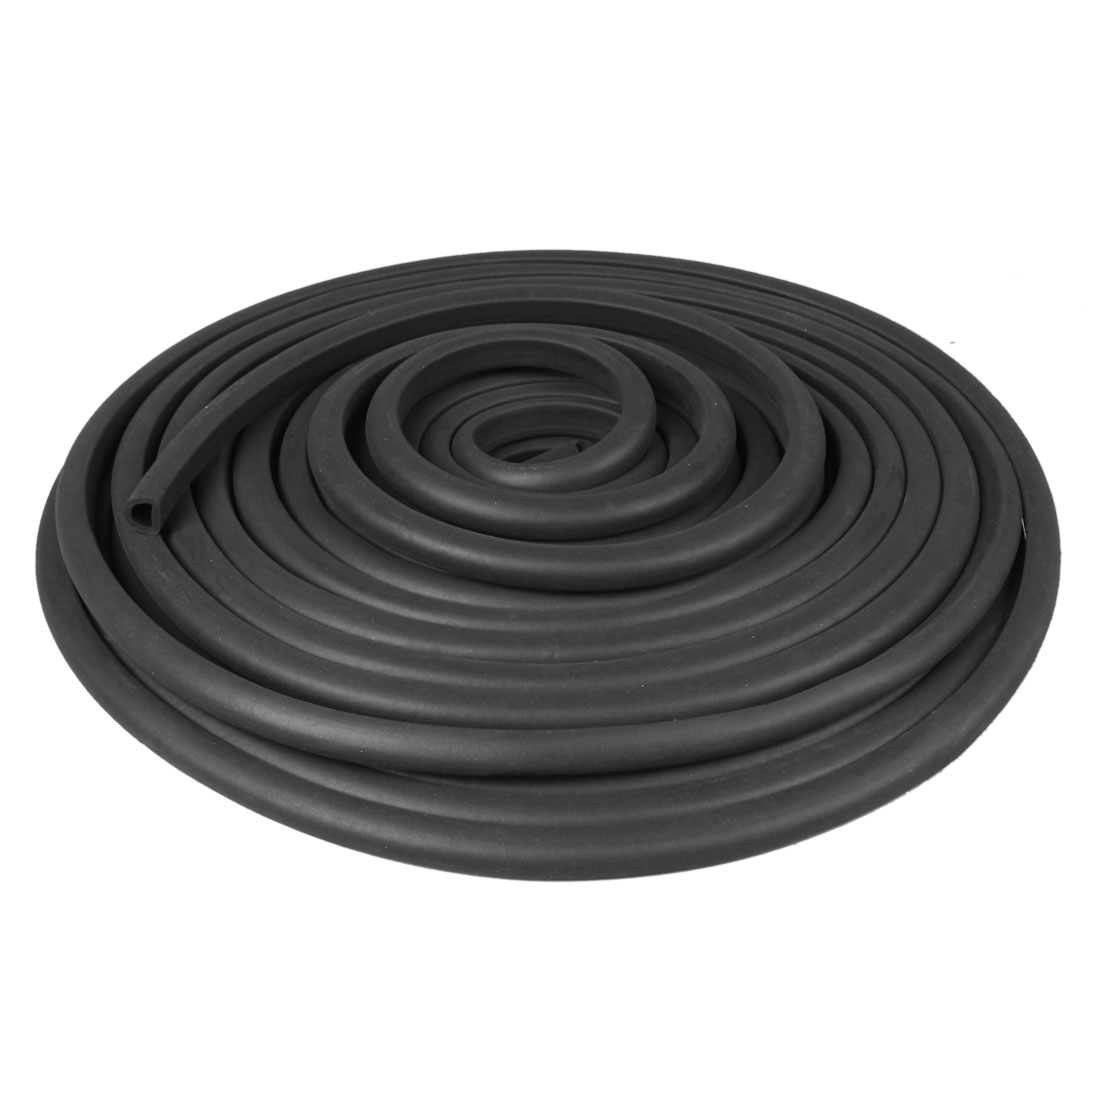 Black Rubber Car Sealed Strip Line 14.5M x 12mm x 12mm